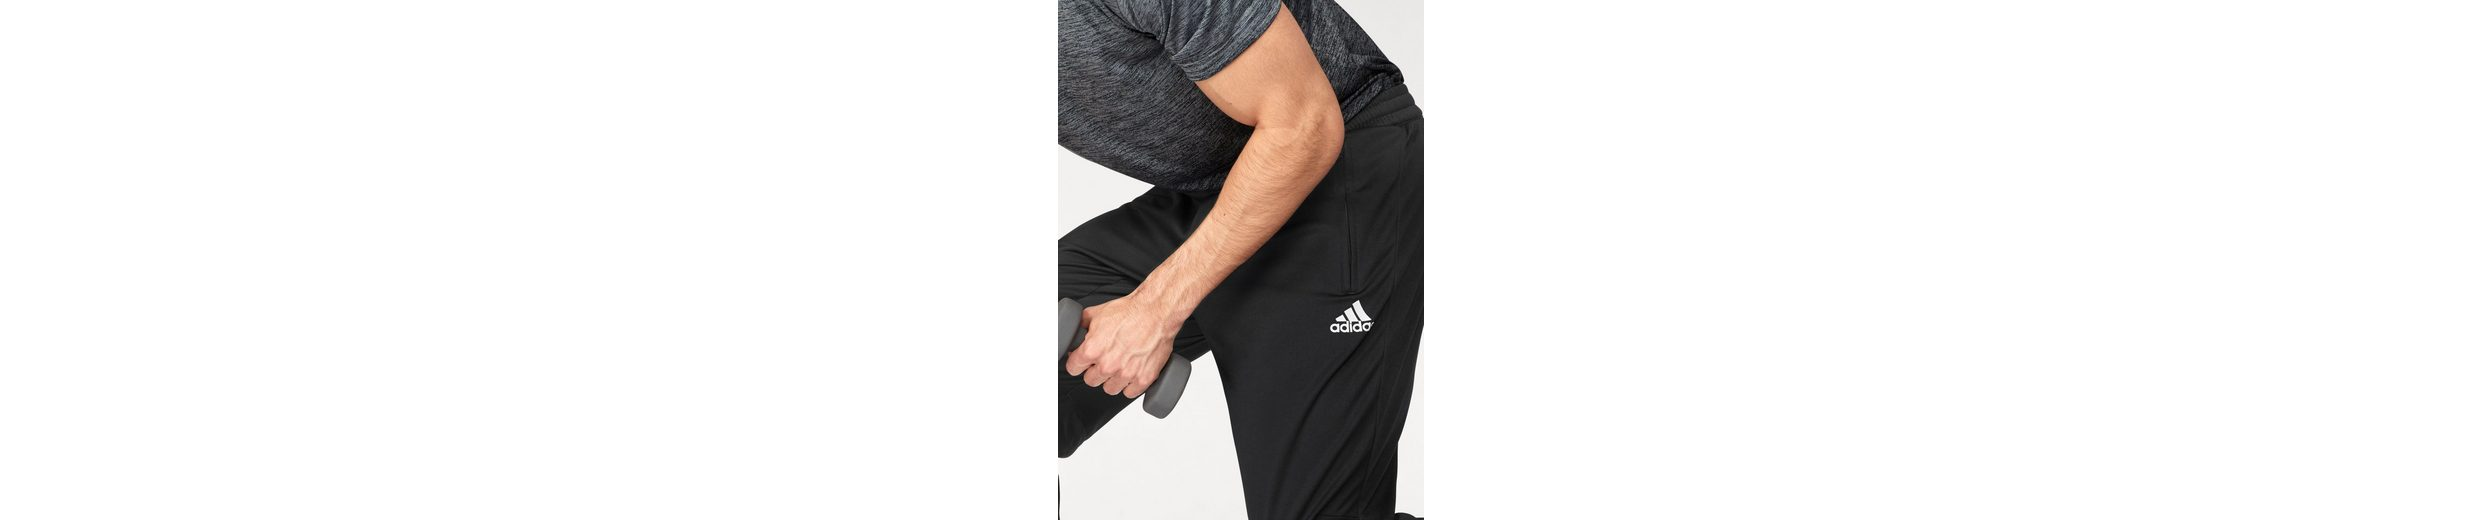 Trainingshose adidas ANF Trainingshose adidas TRAINING adidas PANT Performance TRAINING Performance PANT ANF xqF8WWRnaU